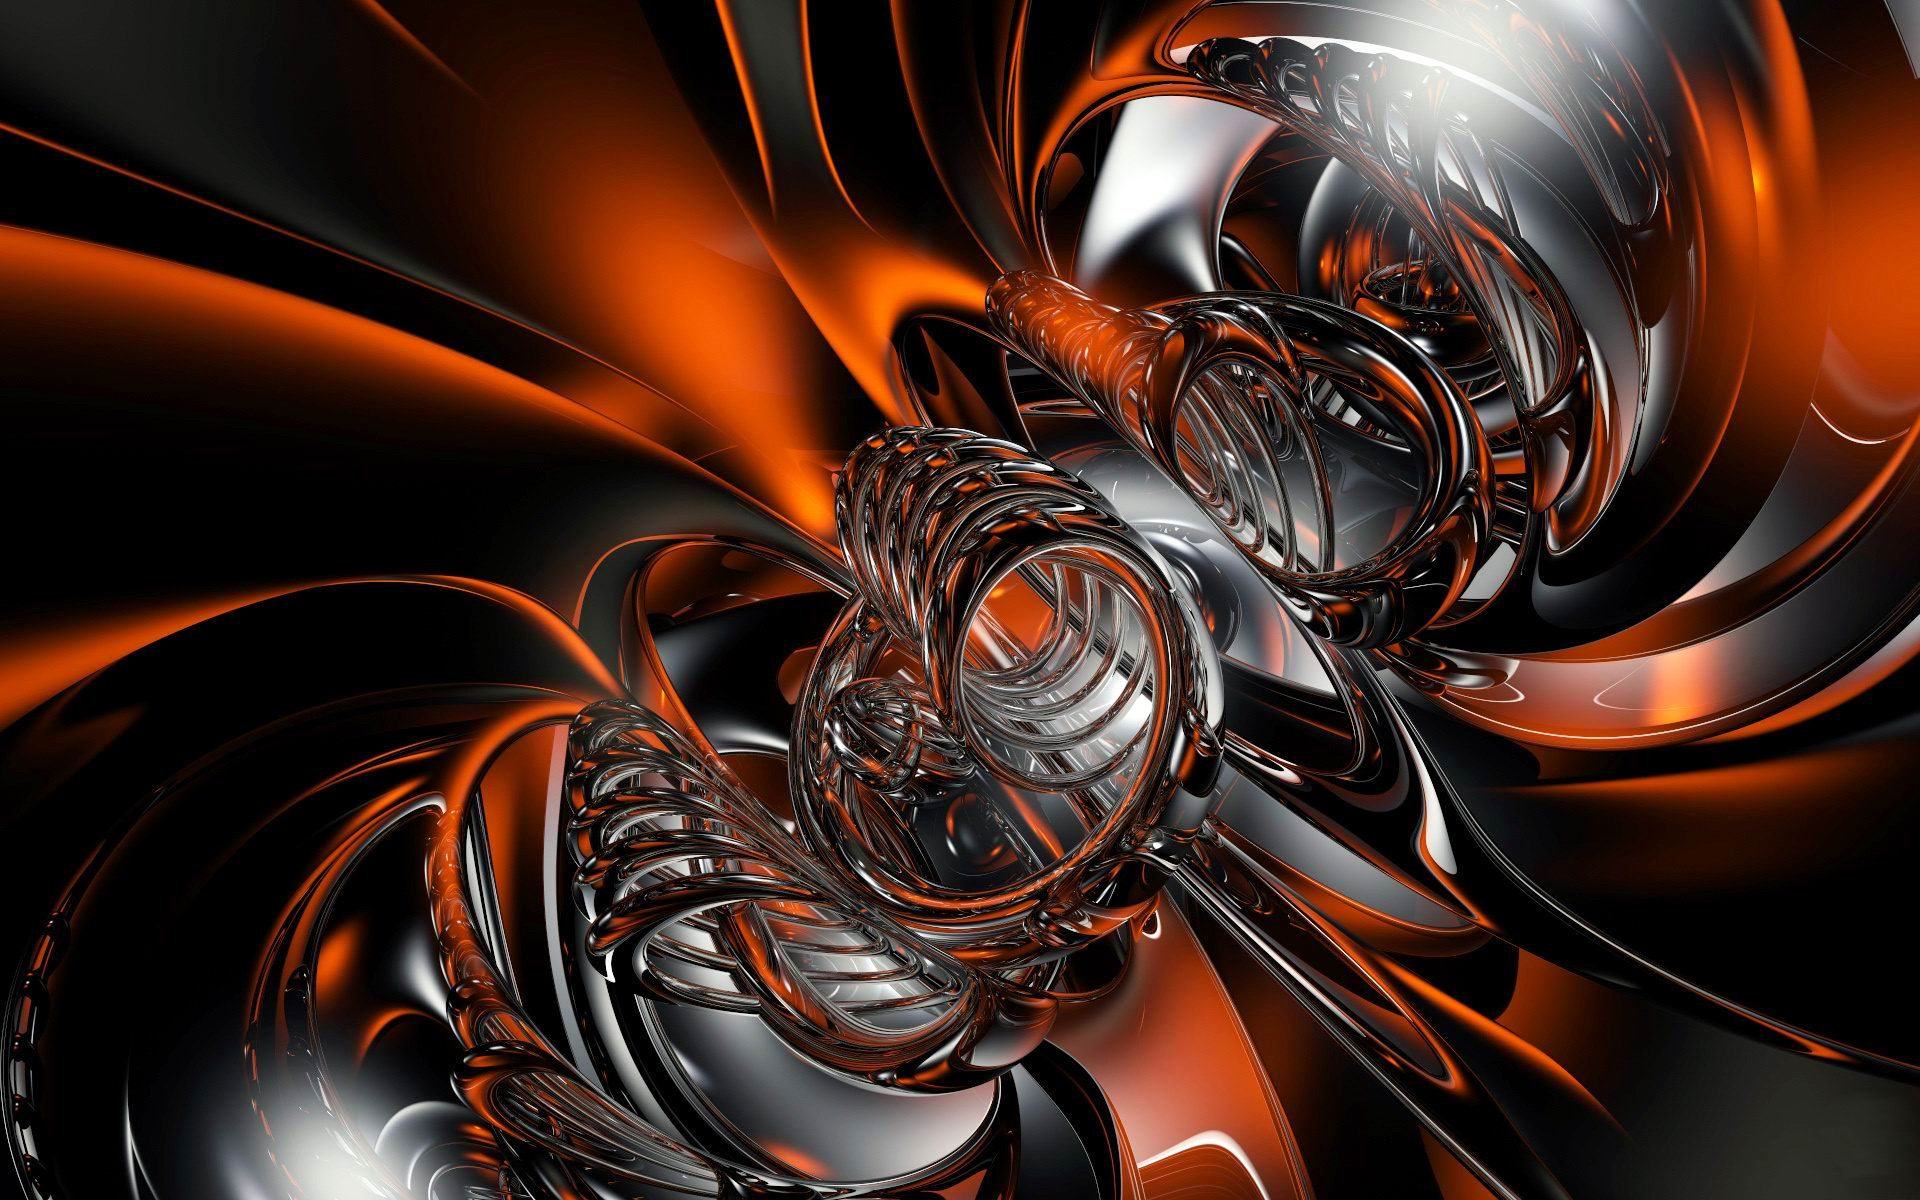 78+ images about ABSTRACT on Pinterest   Planets, Cubes and Hd